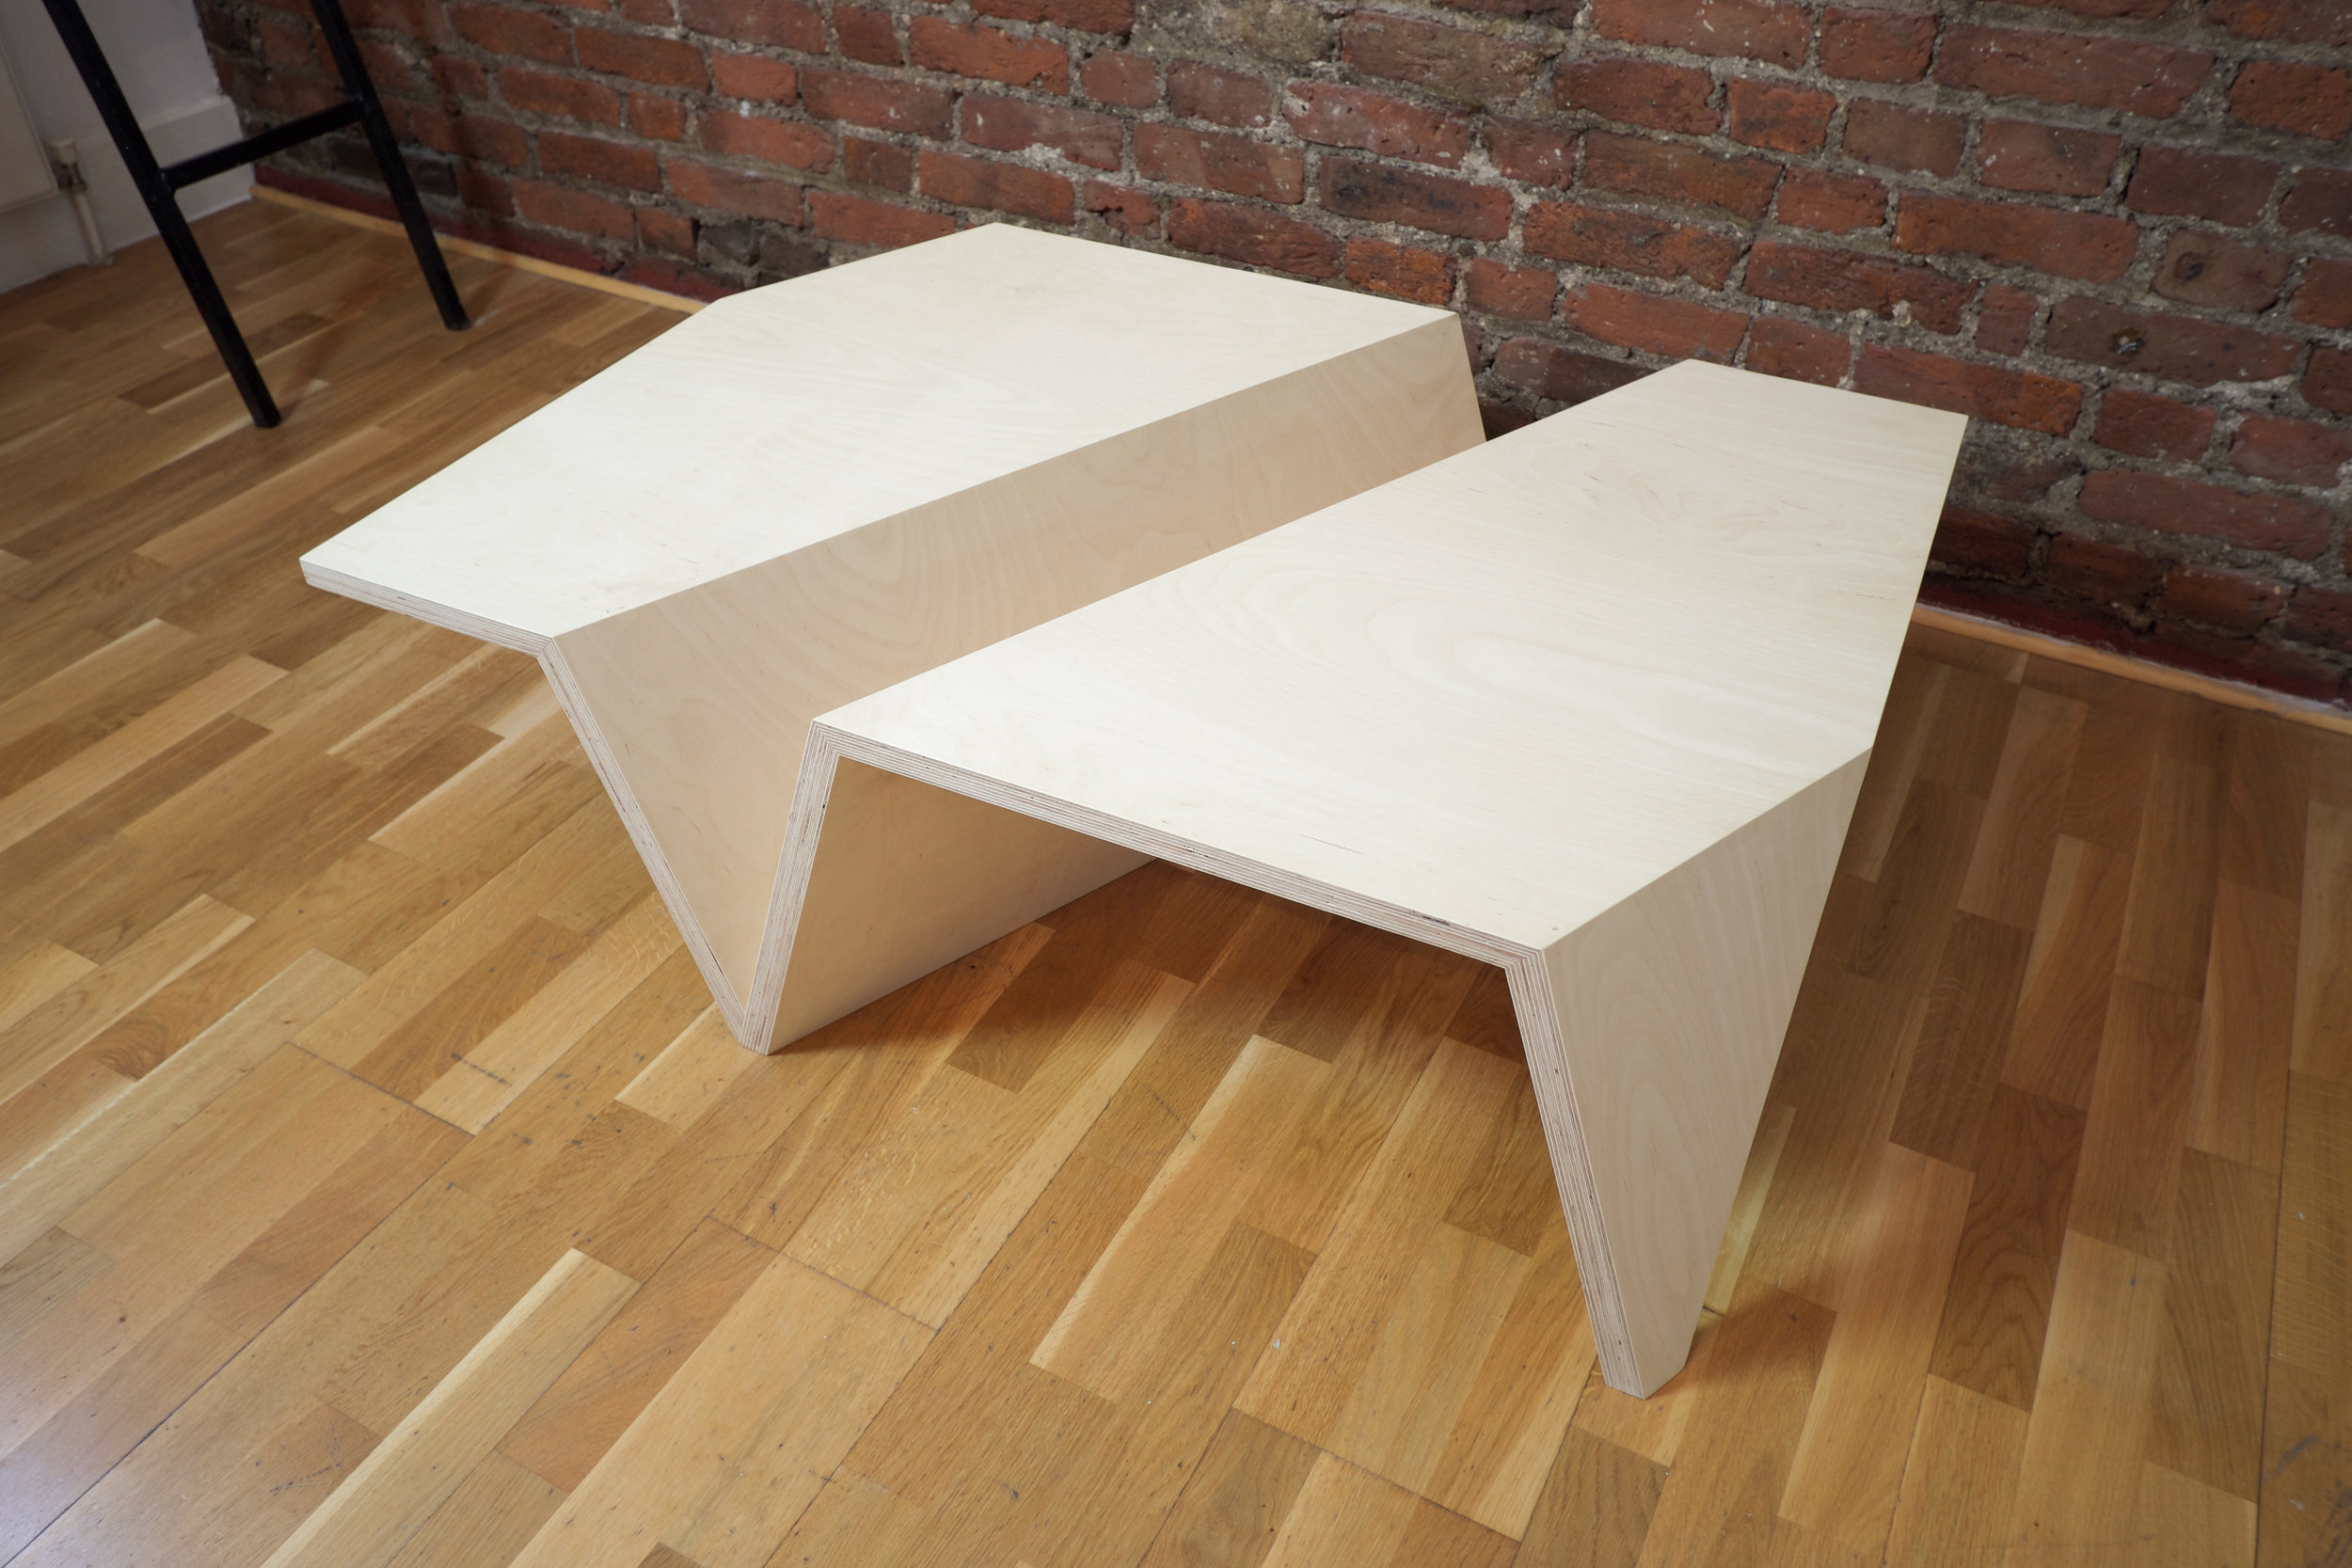 Origami Low Coffee Table in Beech Ply